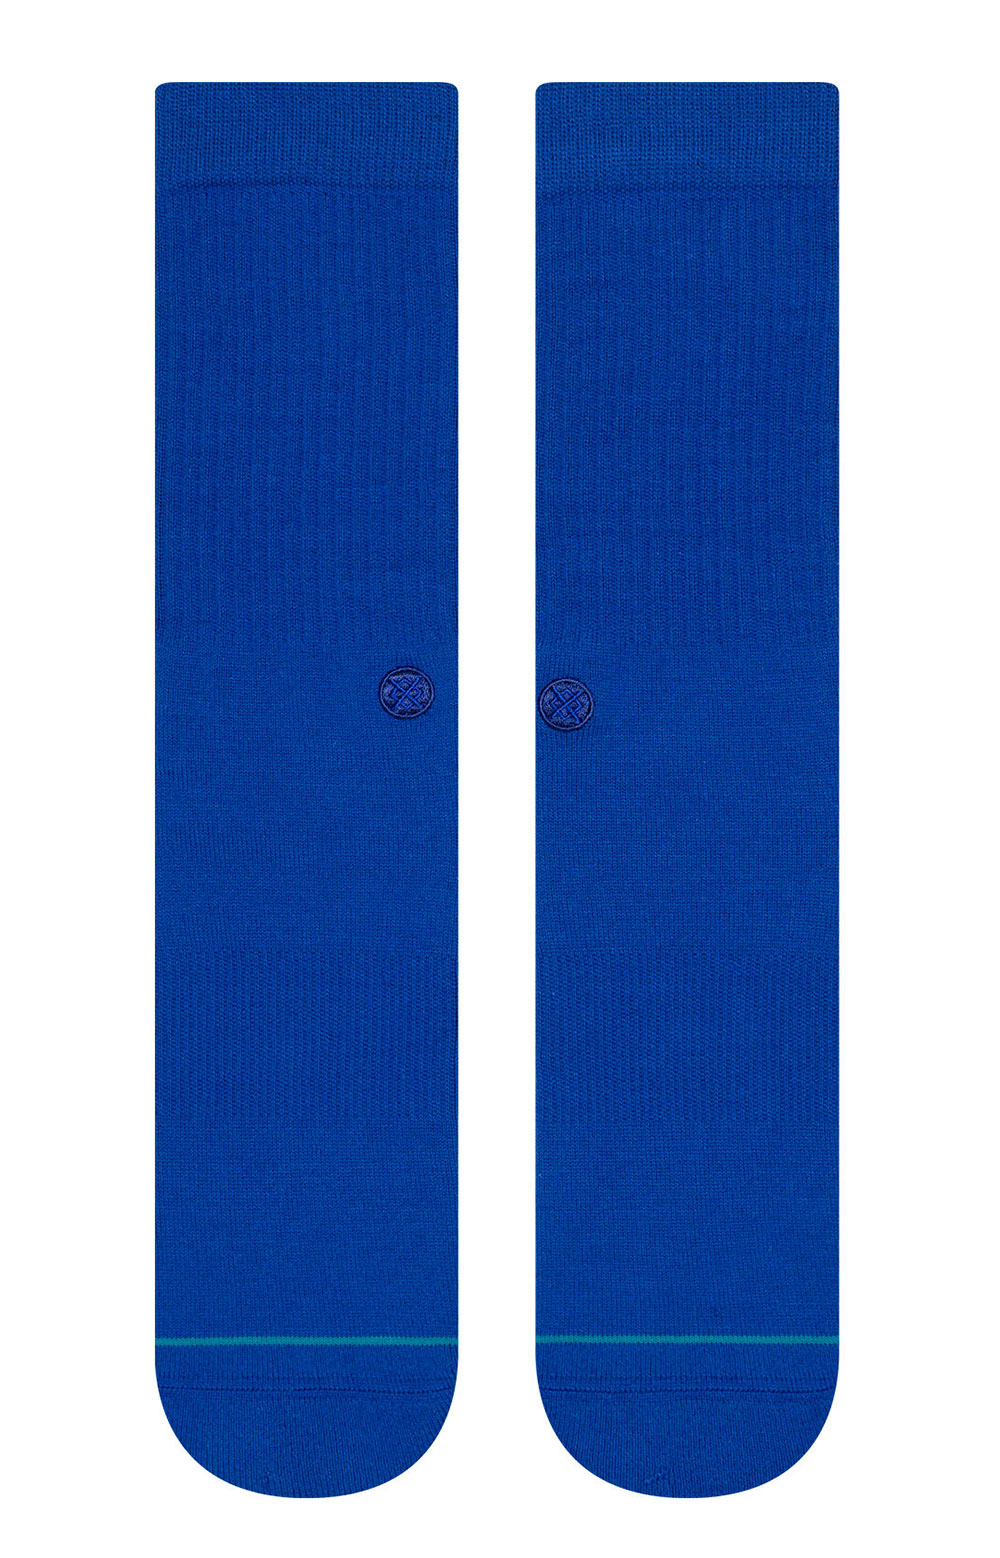 Icon Socks - Cobalt Blue 2